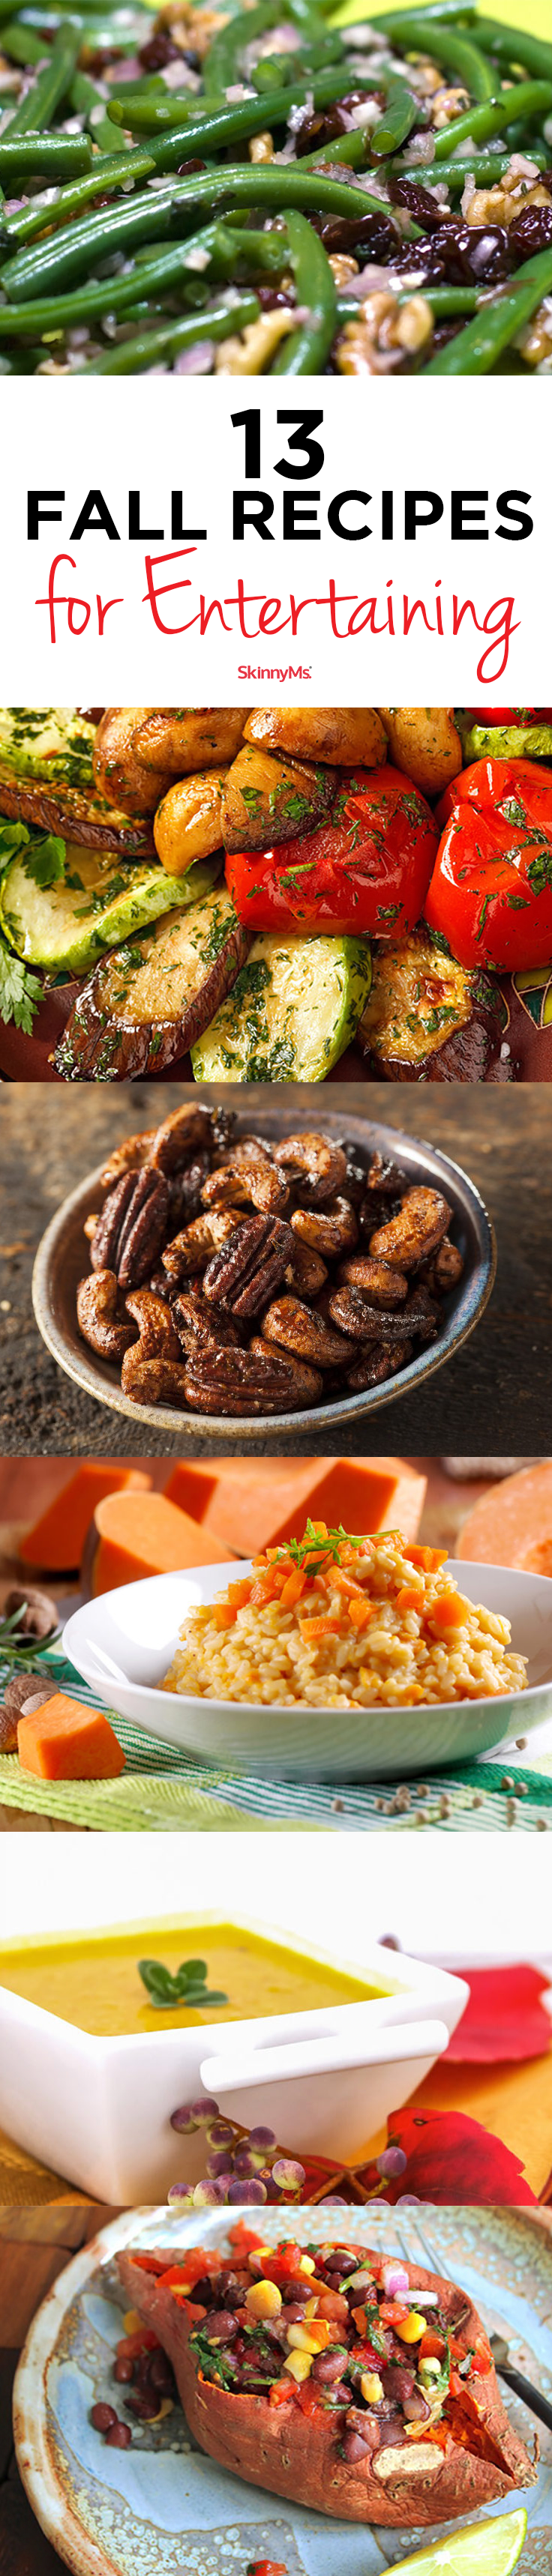 13 Fall Recipes for Entertaining